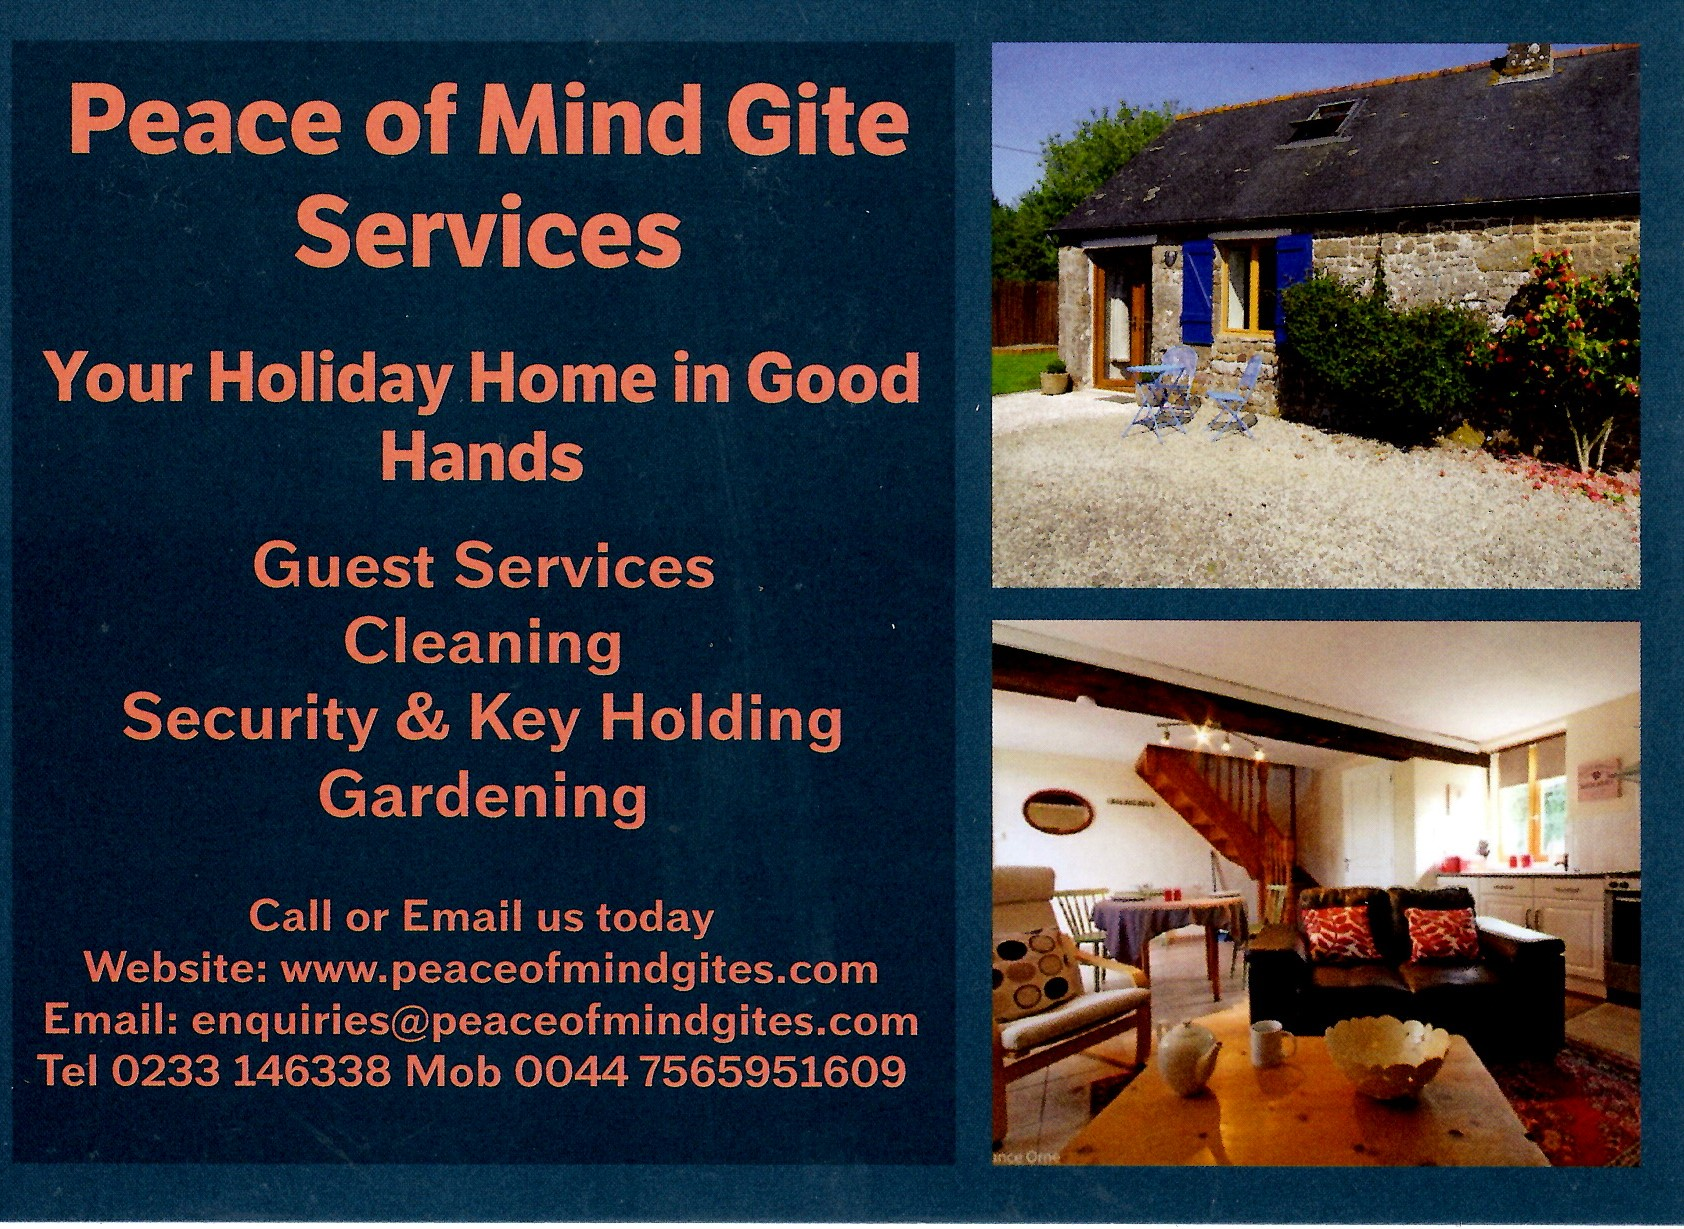 Peace of Mind Gite Services